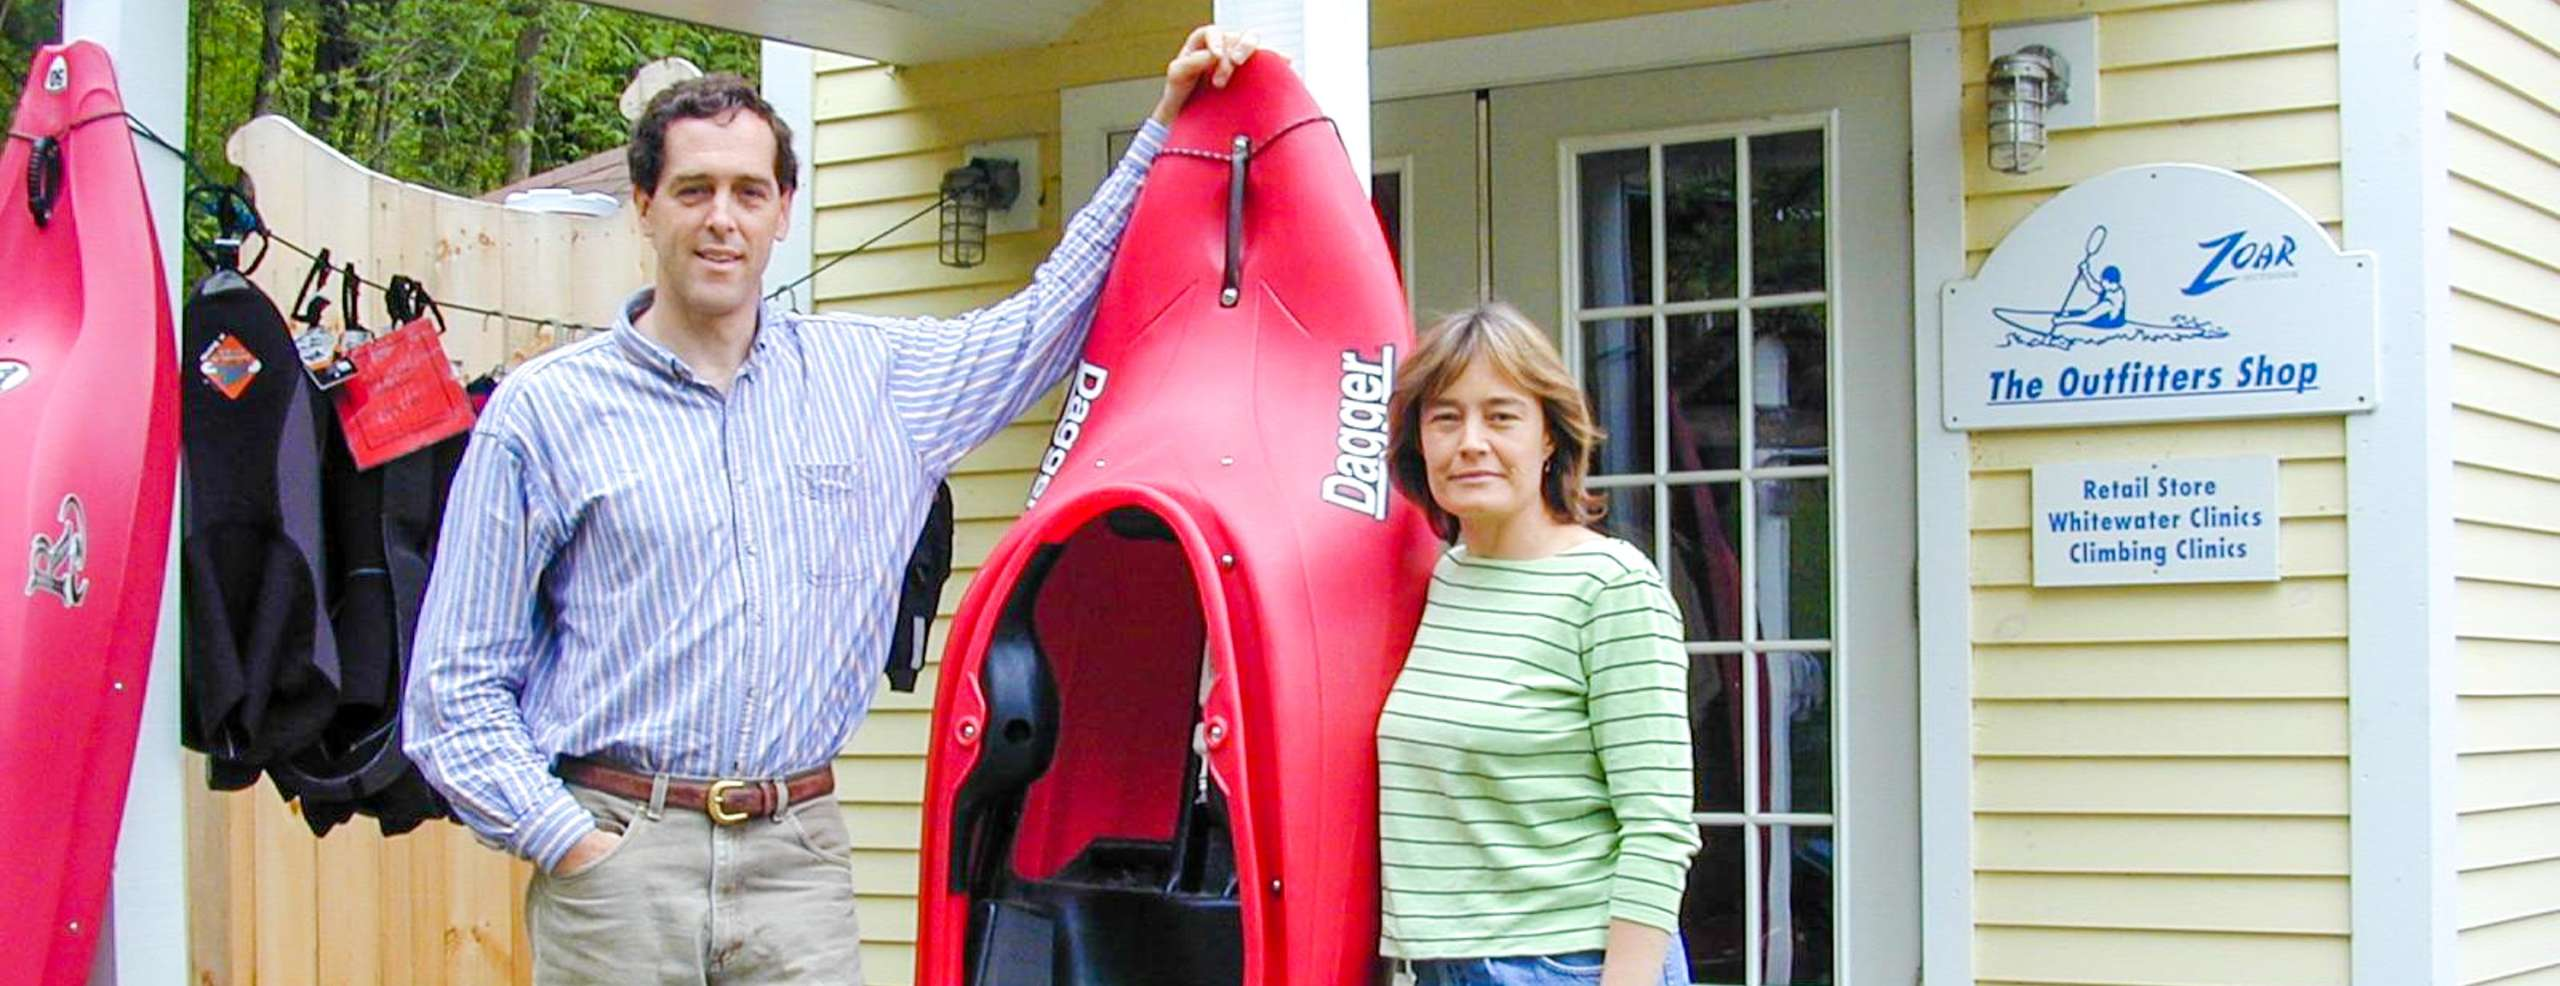 Founders Bruce and Karen standing by a kayak perched up against a house